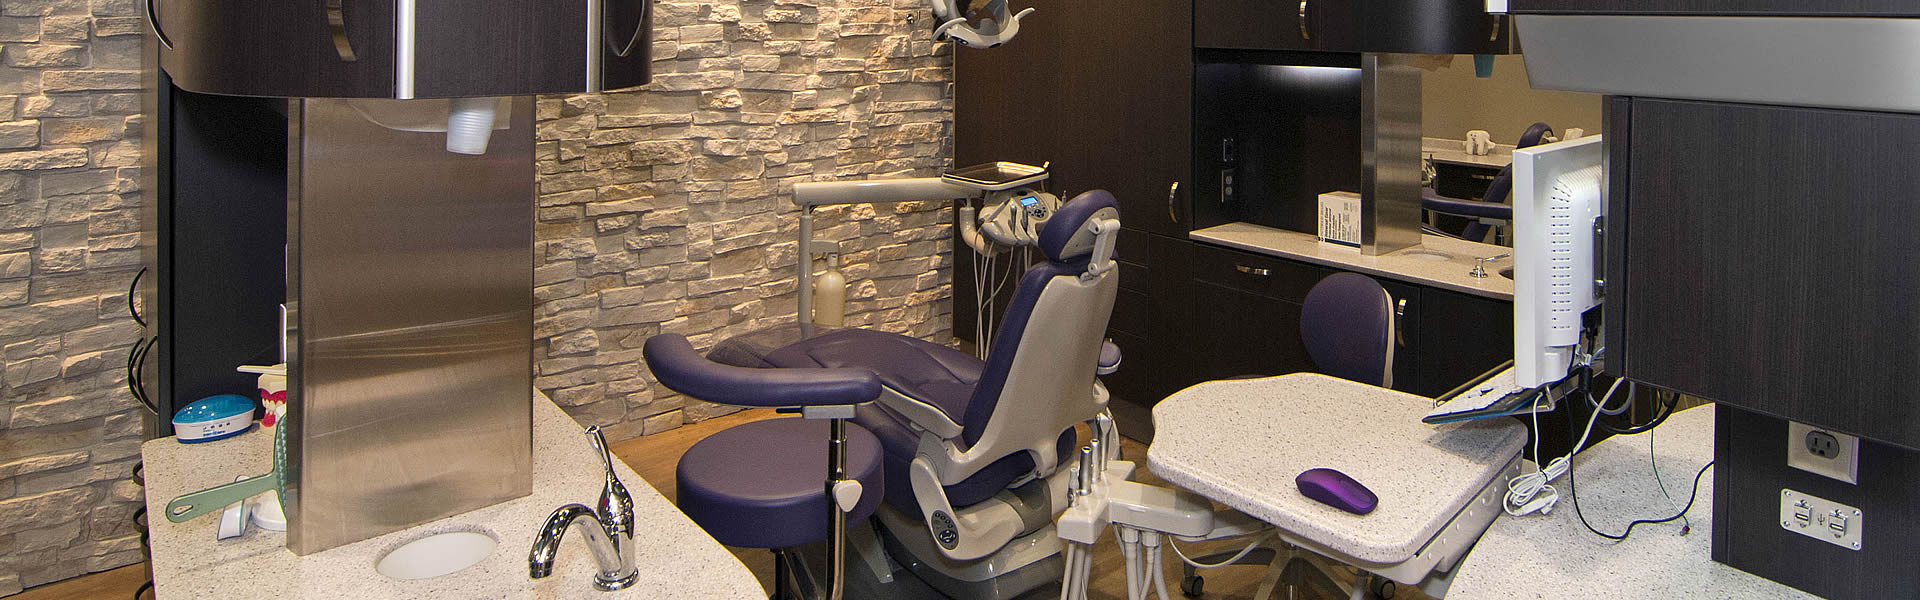 Westside dental centre's modern patient room in Kelowna BC